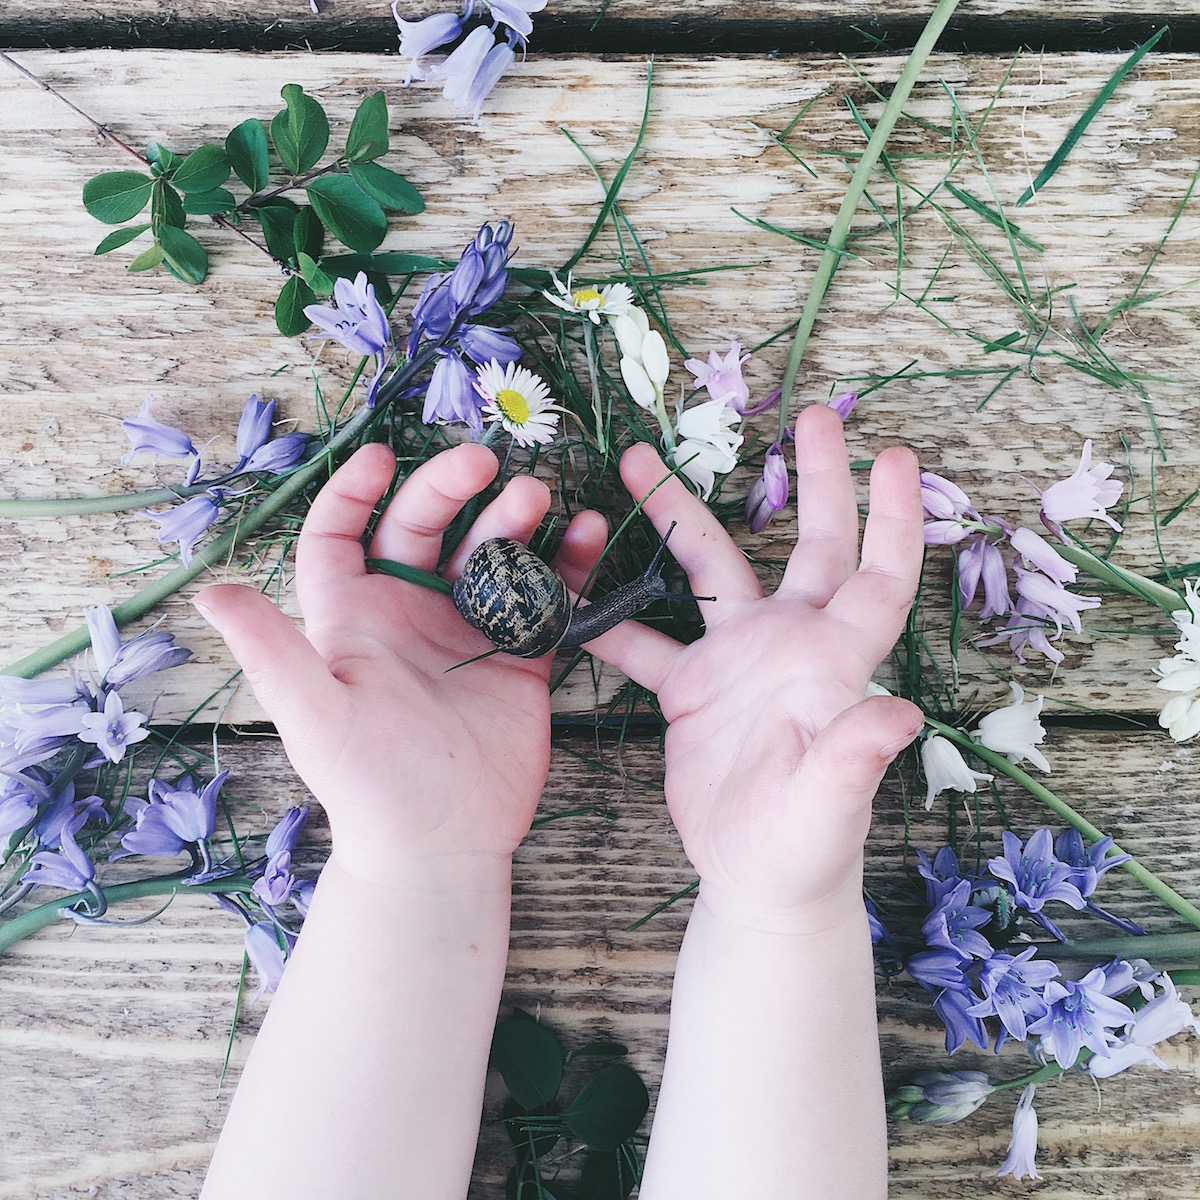 Ideas for Instagram photo prop ideas & hashtags - wildlife and flowers